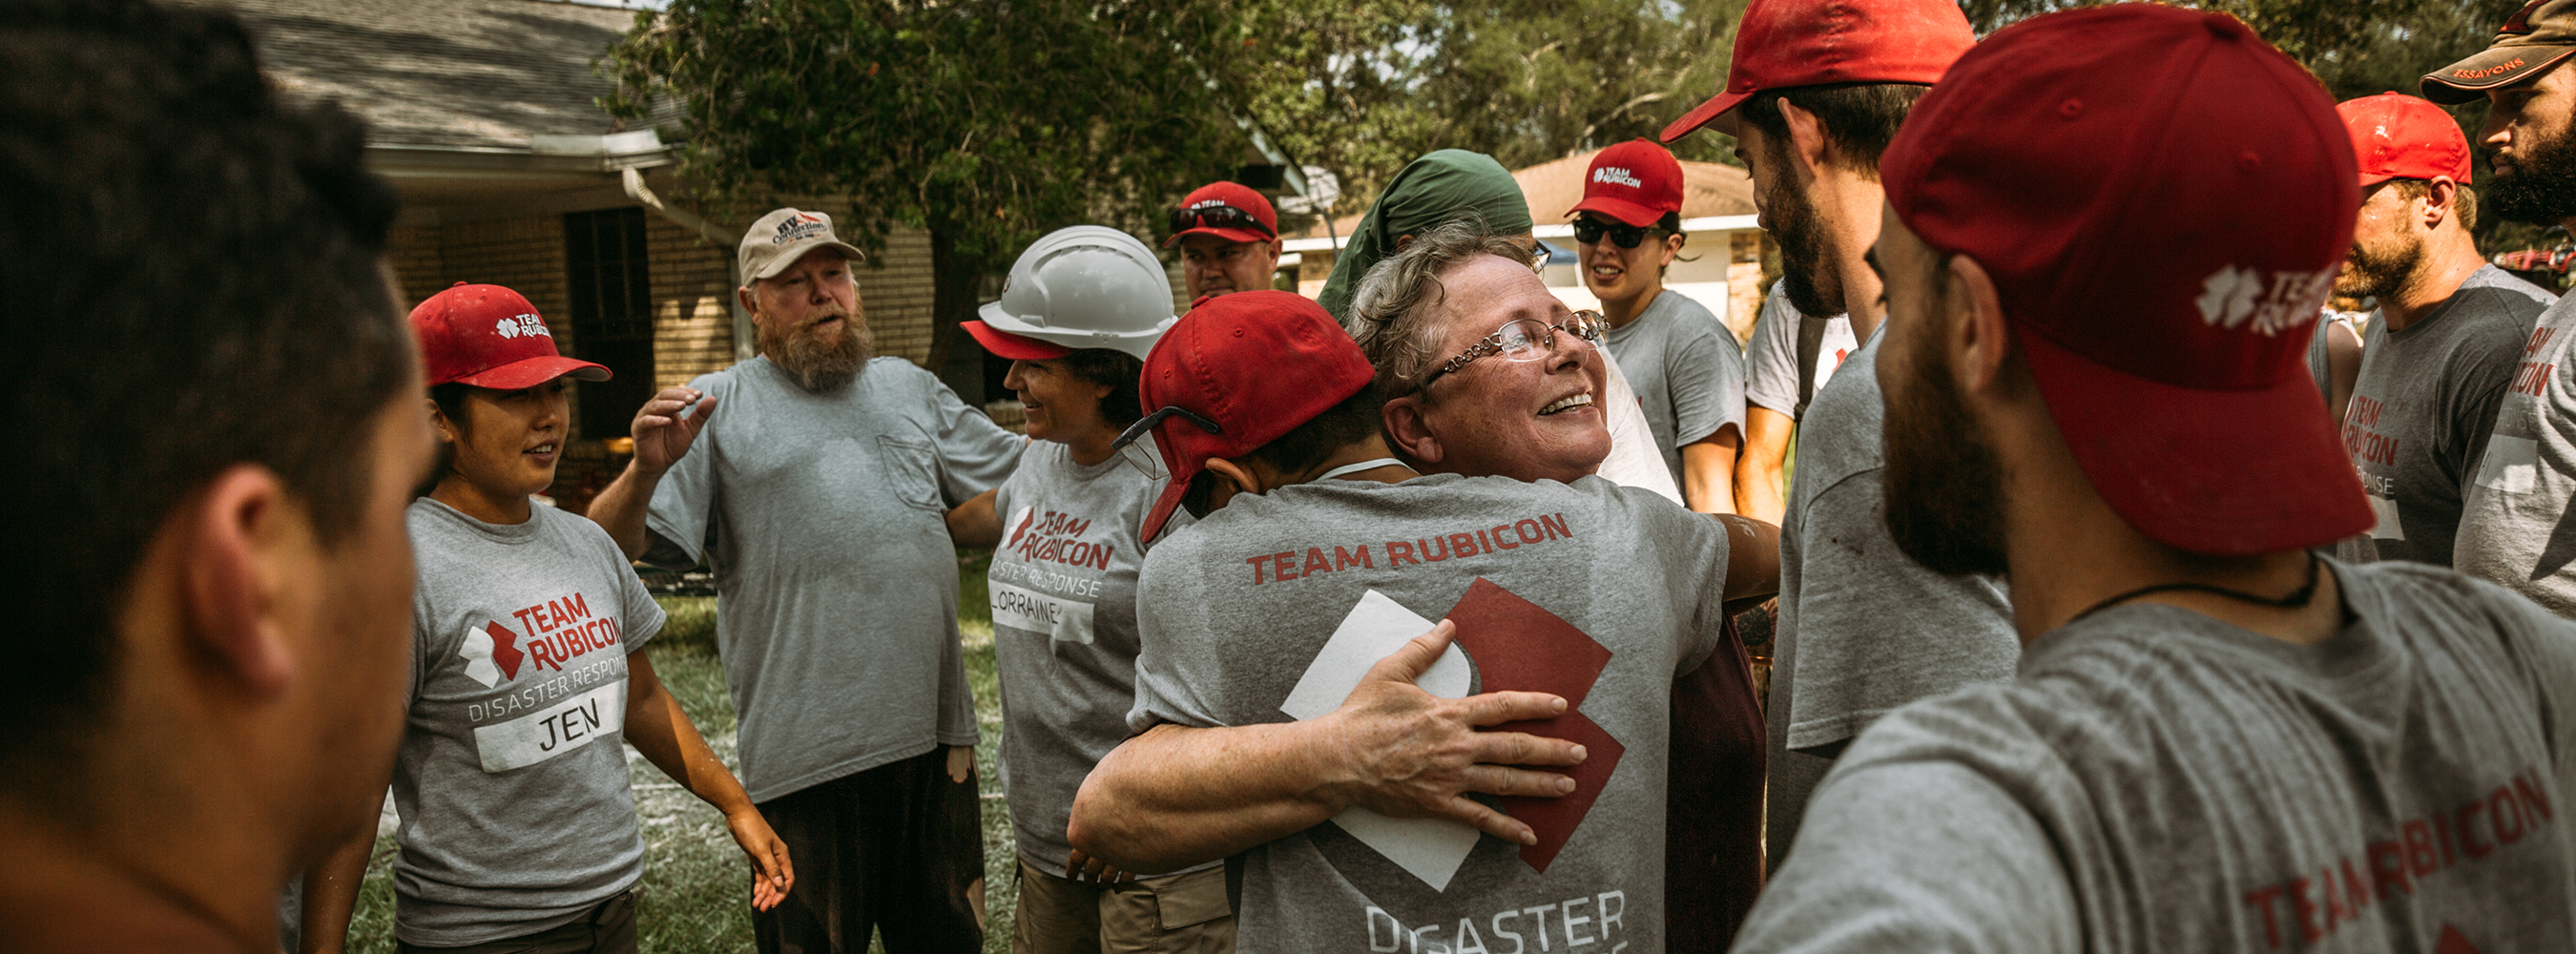 Disaster Response workers celebrating together